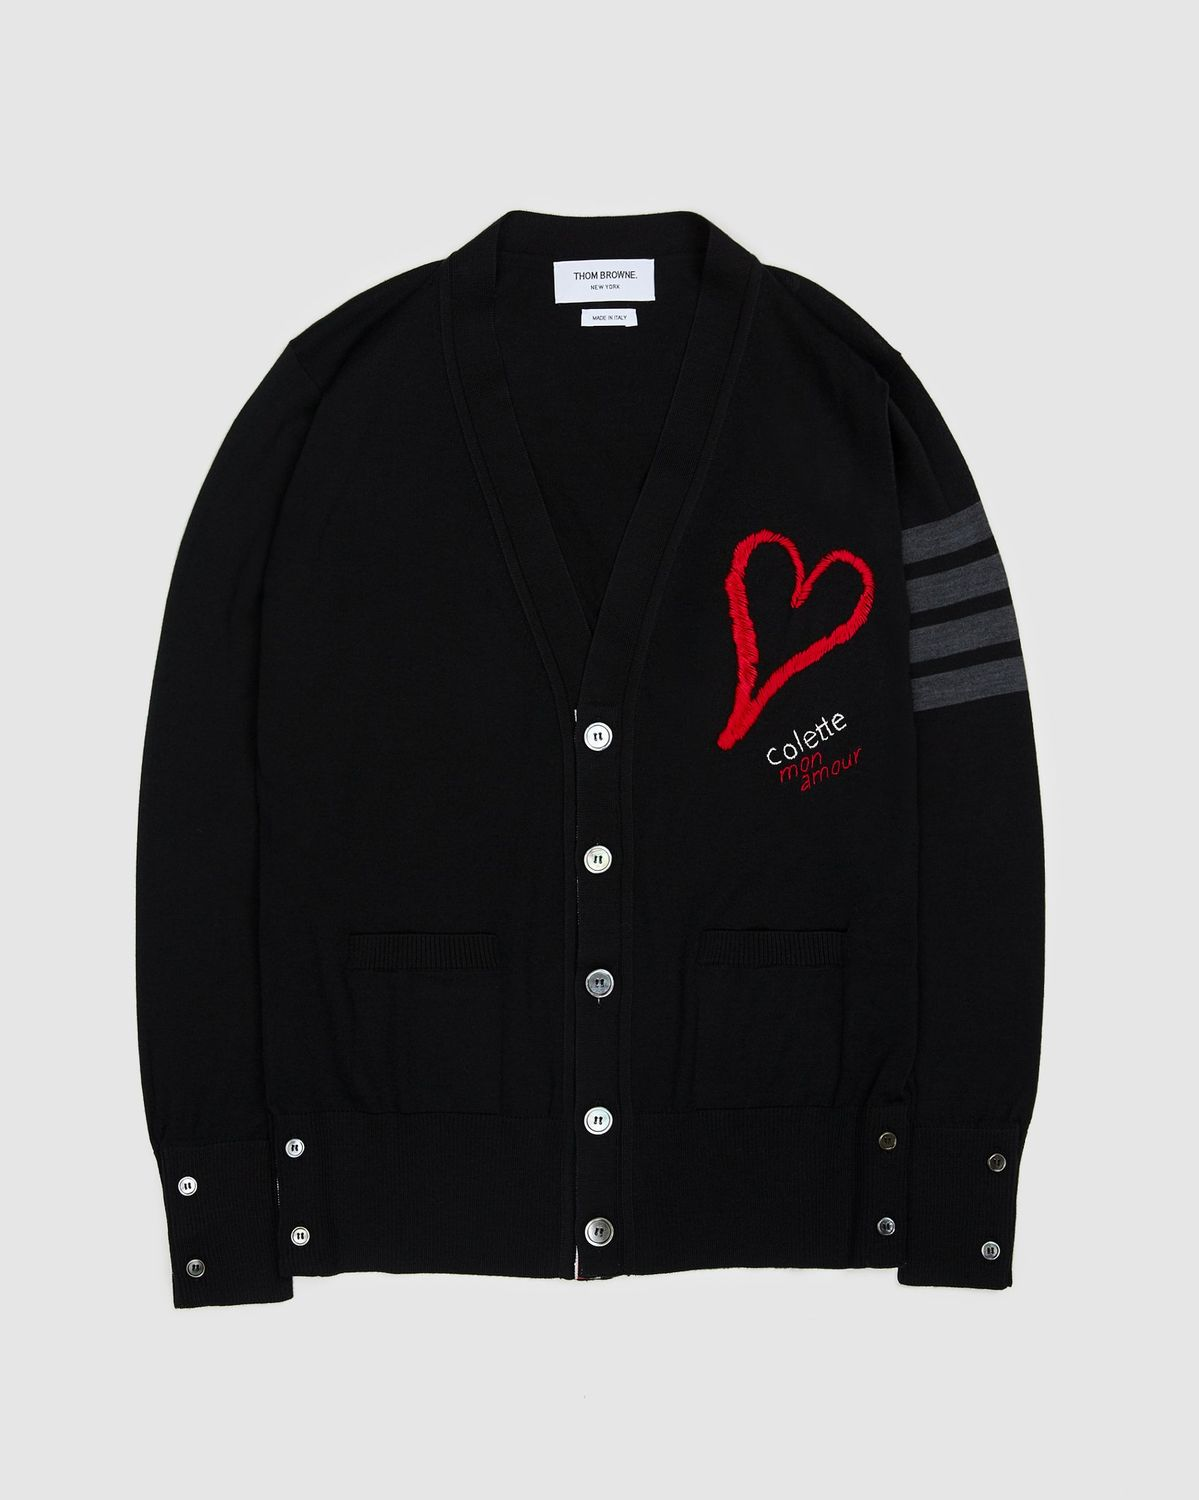 Colette Mon Amour x Thom Browne - Black Heart Cardigan - Image 1